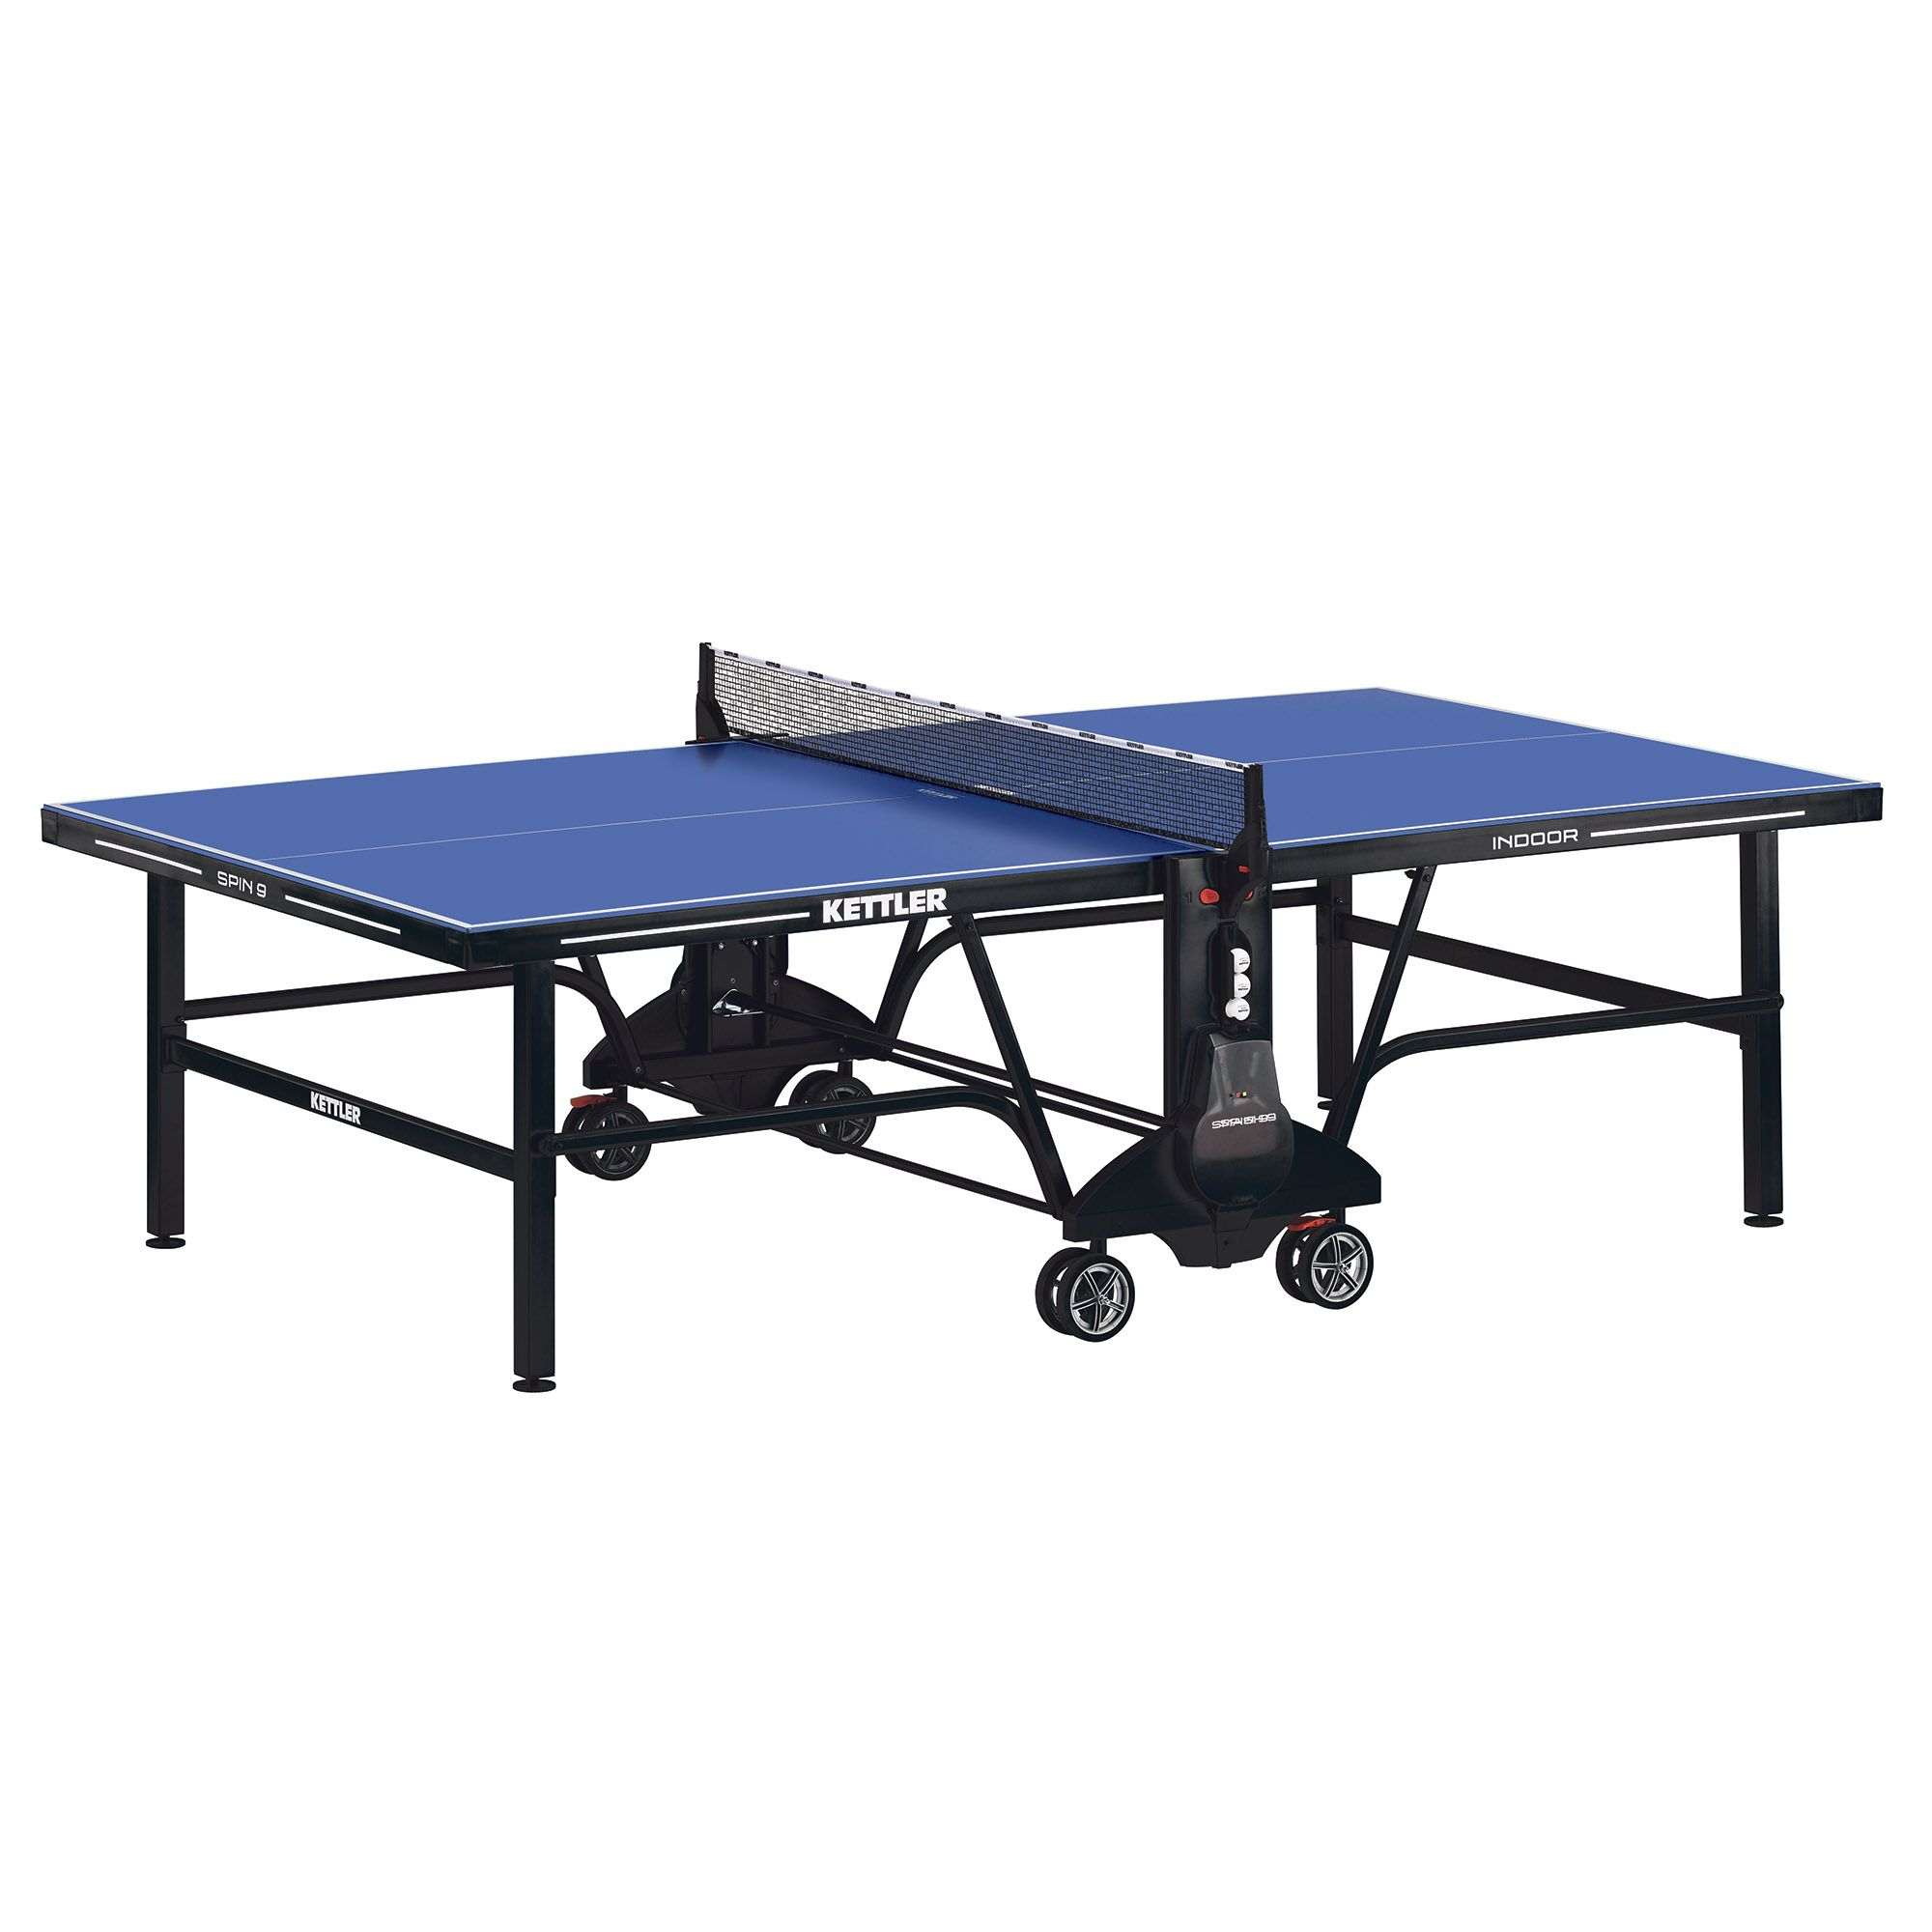 Kettler spin 9 0 indoor table tennis table - Used outdoor table tennis tables for sale ...